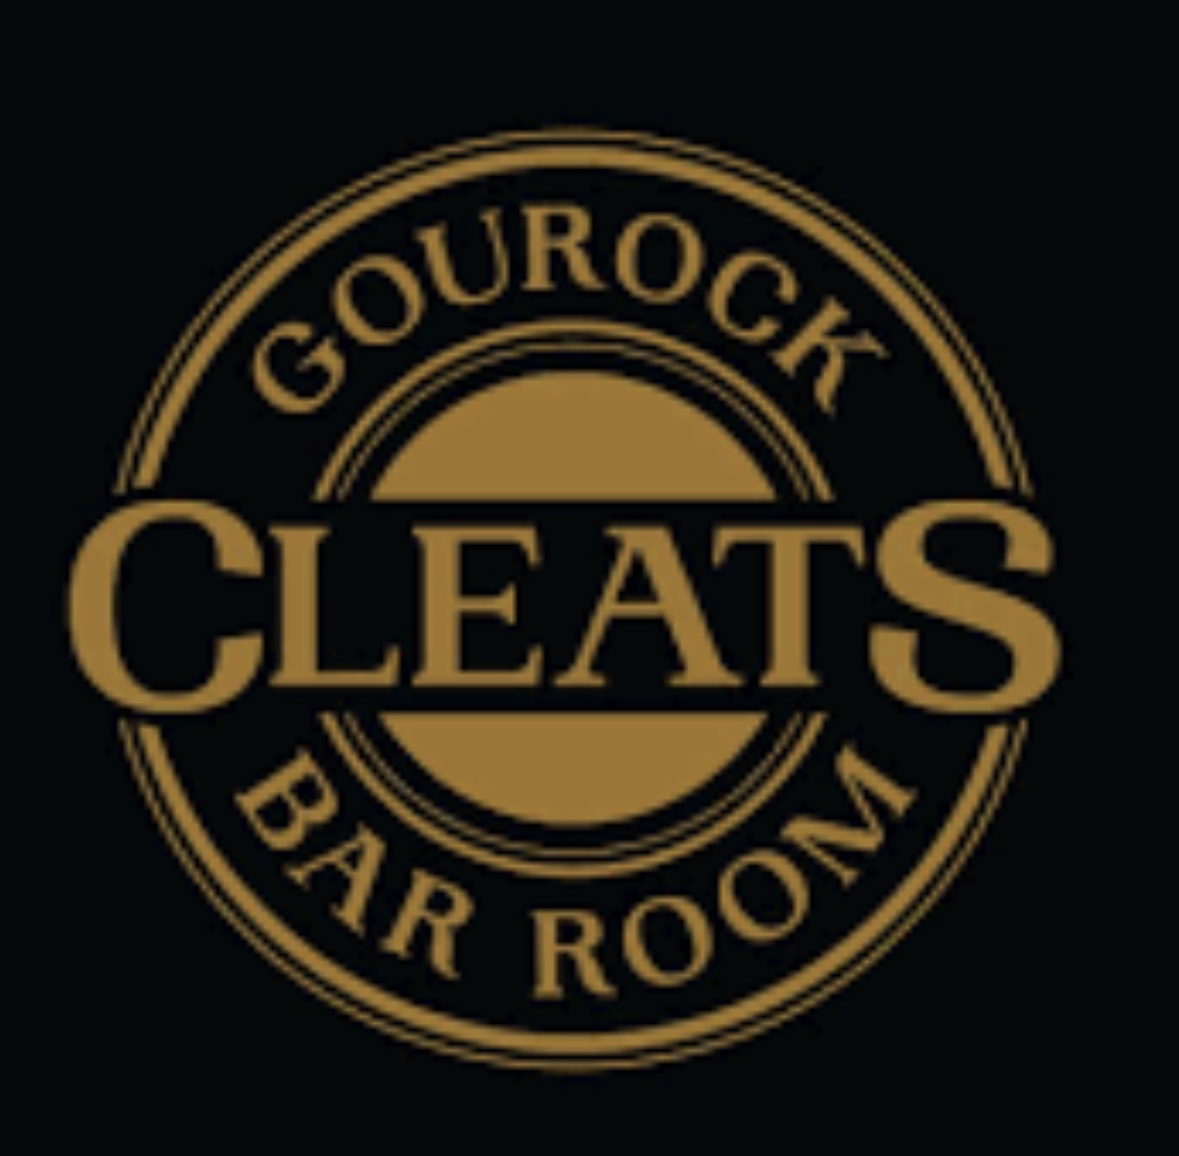 Cleats Bar Gourock